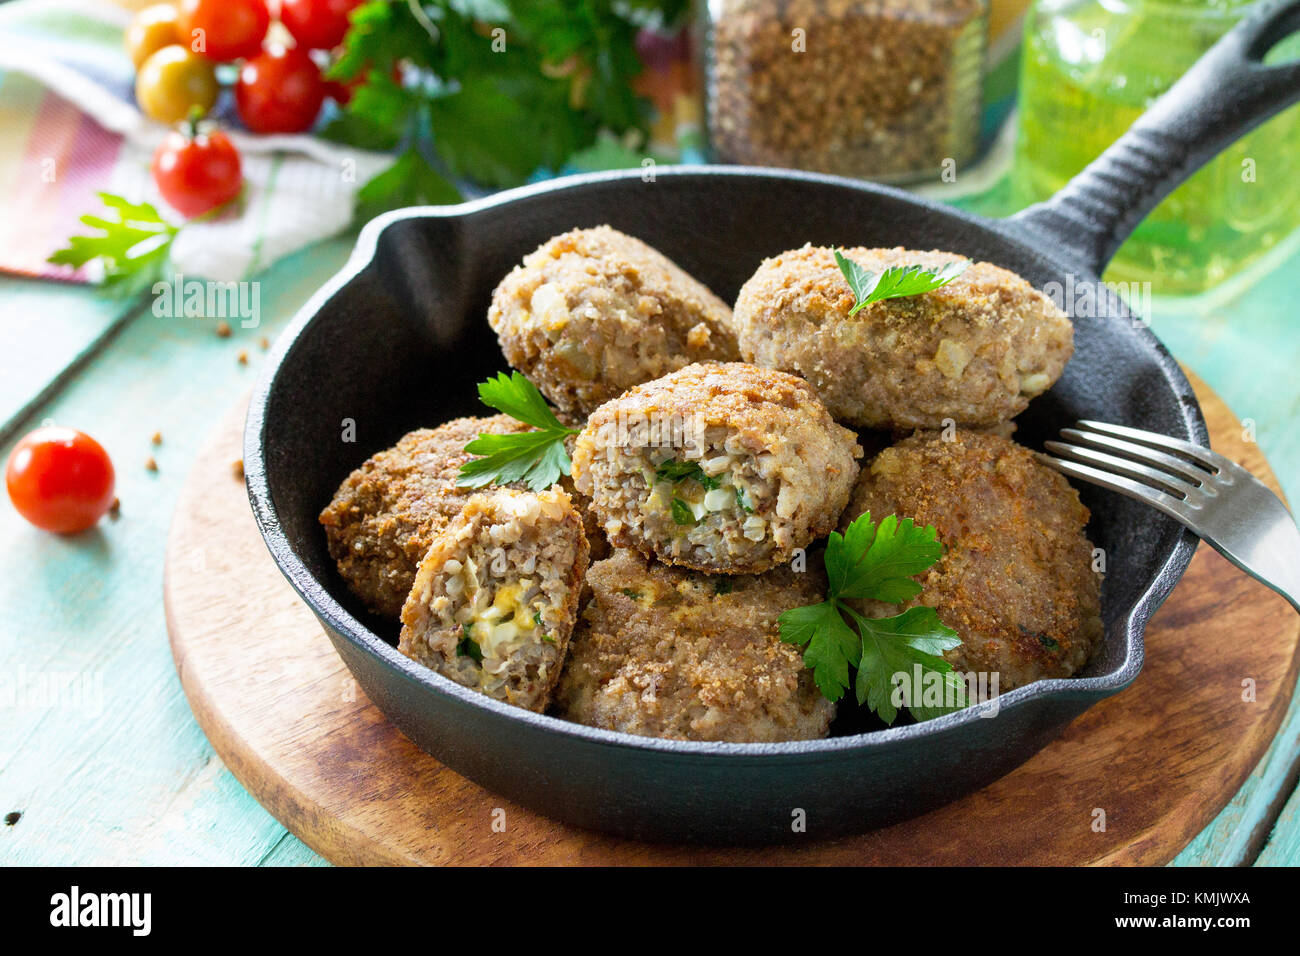 Homemade meatballs with buckwheat and egg stuffing. Cast-iron frying pan with delicious fried cutlets, fresh herbs - Stock Image